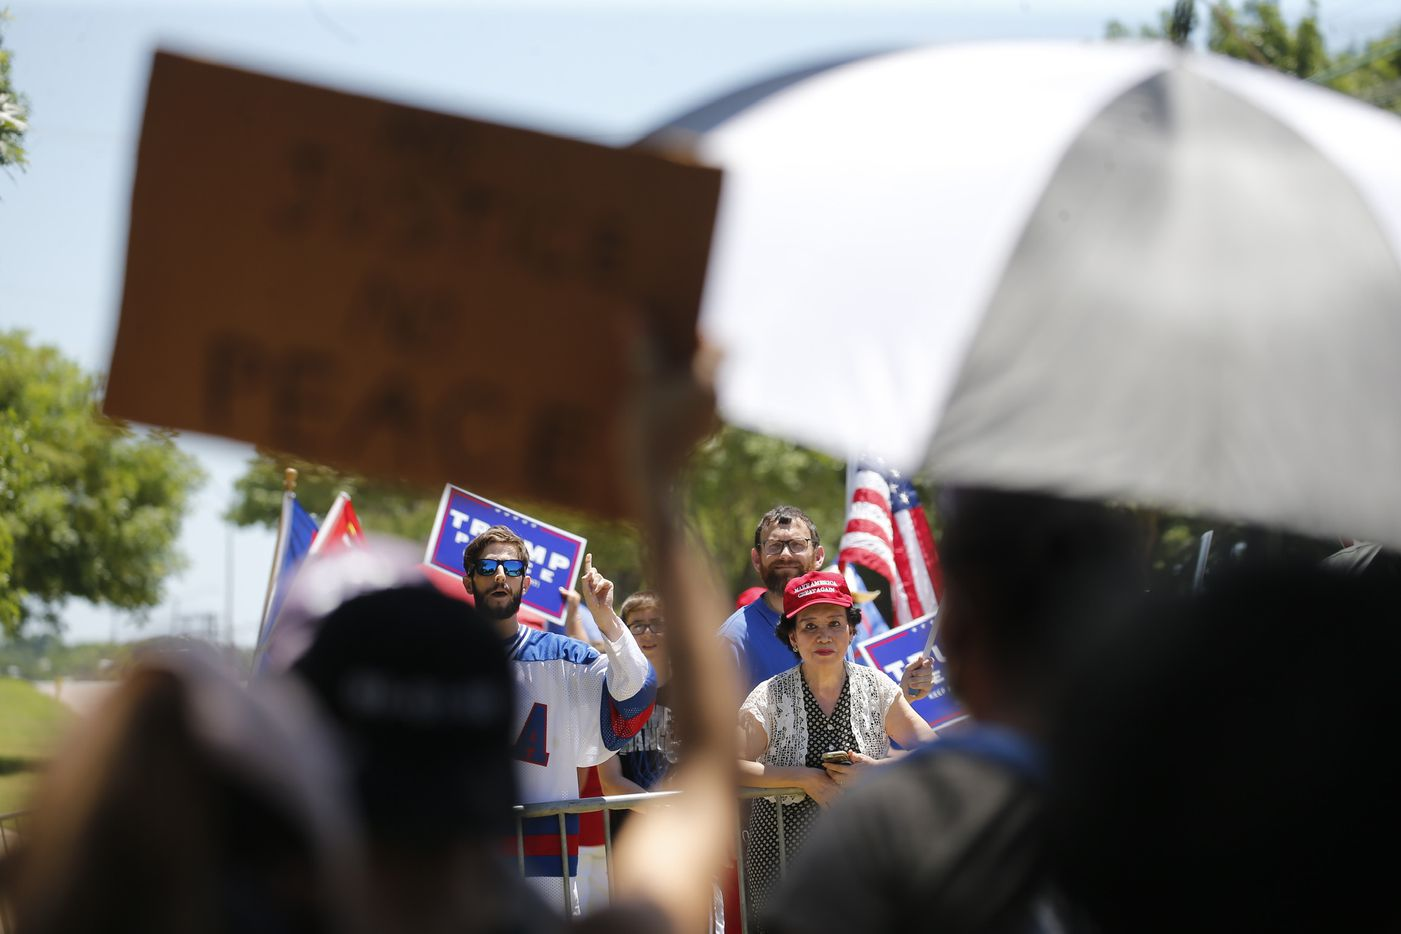 Anti-Trump protesters (foreground) and Trump supporters chant at each other across the street from Gateway Church in Dallas, on Thursday, June 11, 2020. George Floyd died in police custody in Minneapolis on May 25. Minneapolis police officer Derek Chauvin, who had his knee on the neck of Floyd for at least five minutes has been charged with murder and manslaughter. (Vernon Bryant/The Dallas Morning News)